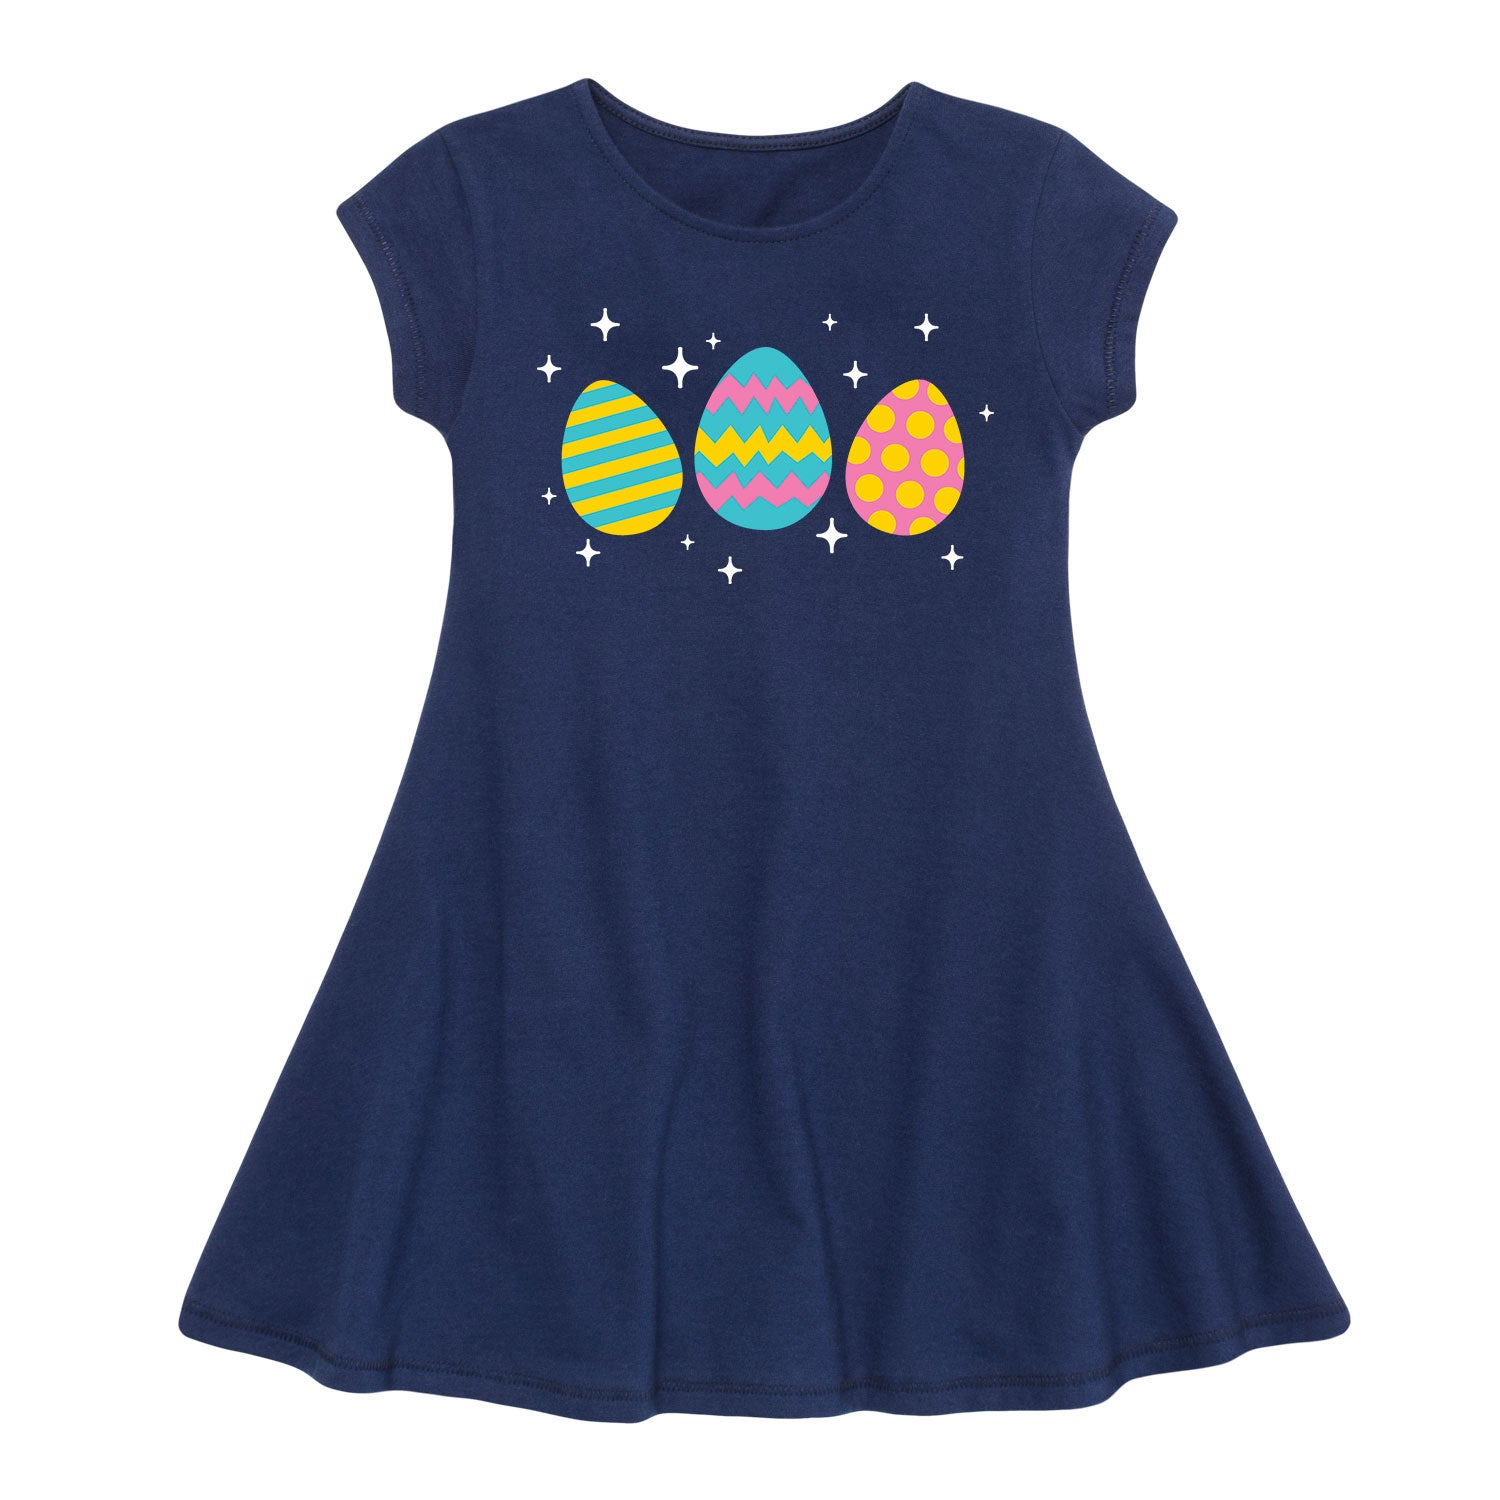 Sparkly Eggs - Toddler Girl Fit And Flare Dress